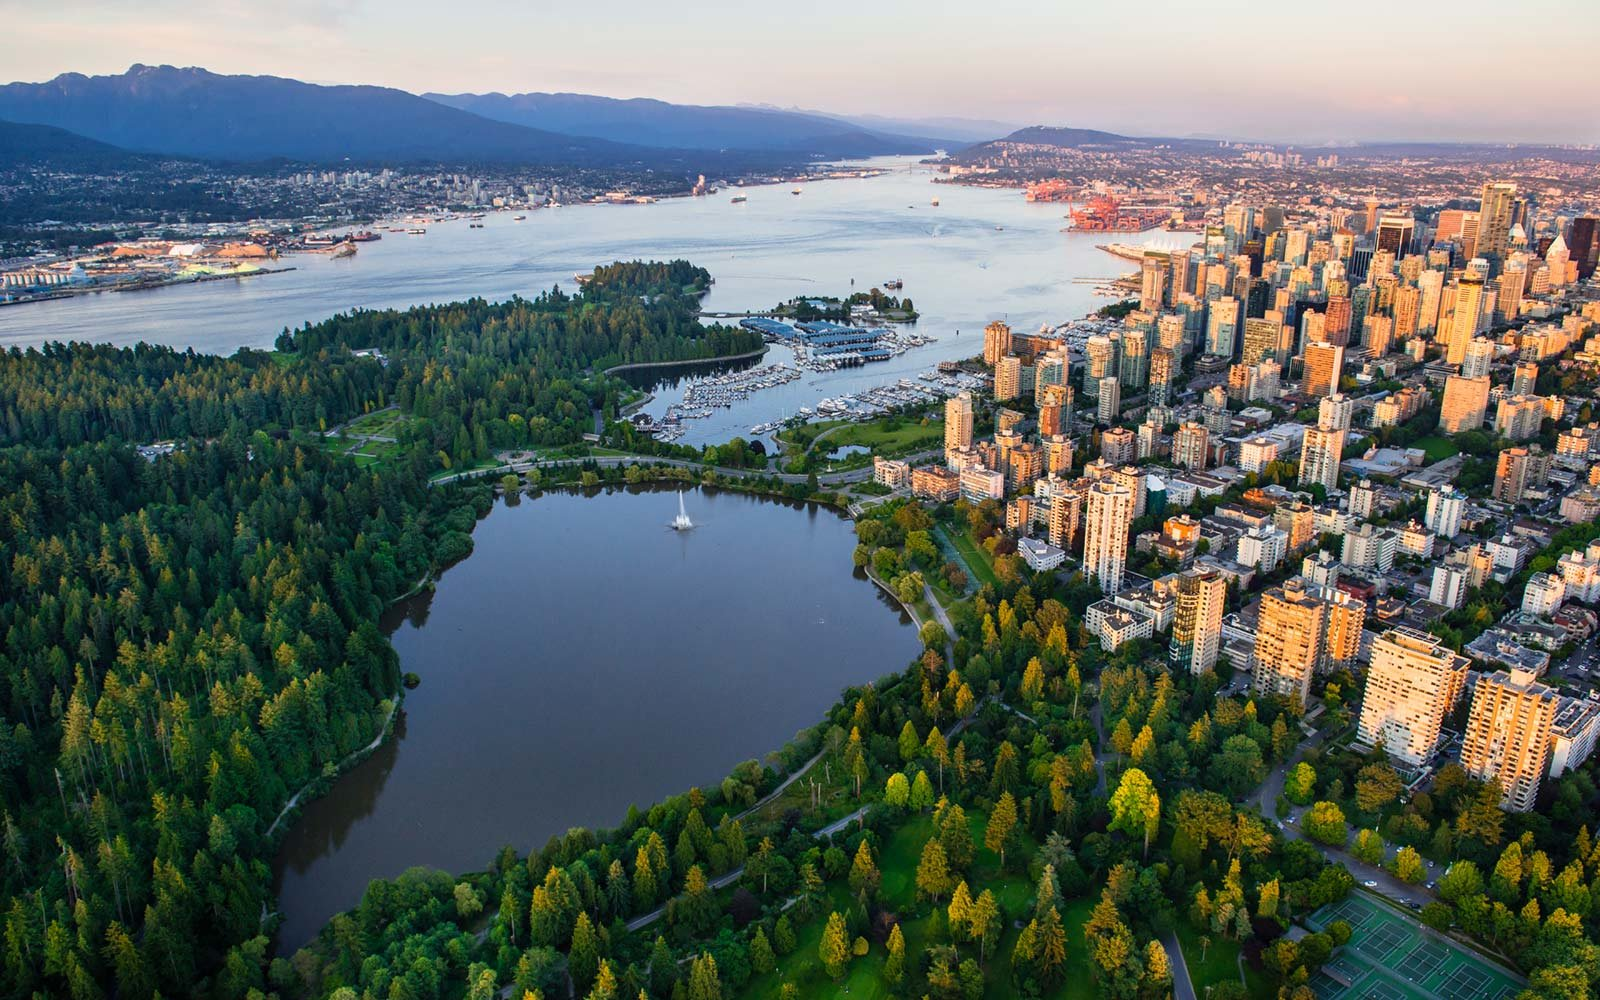 8. Vancouver